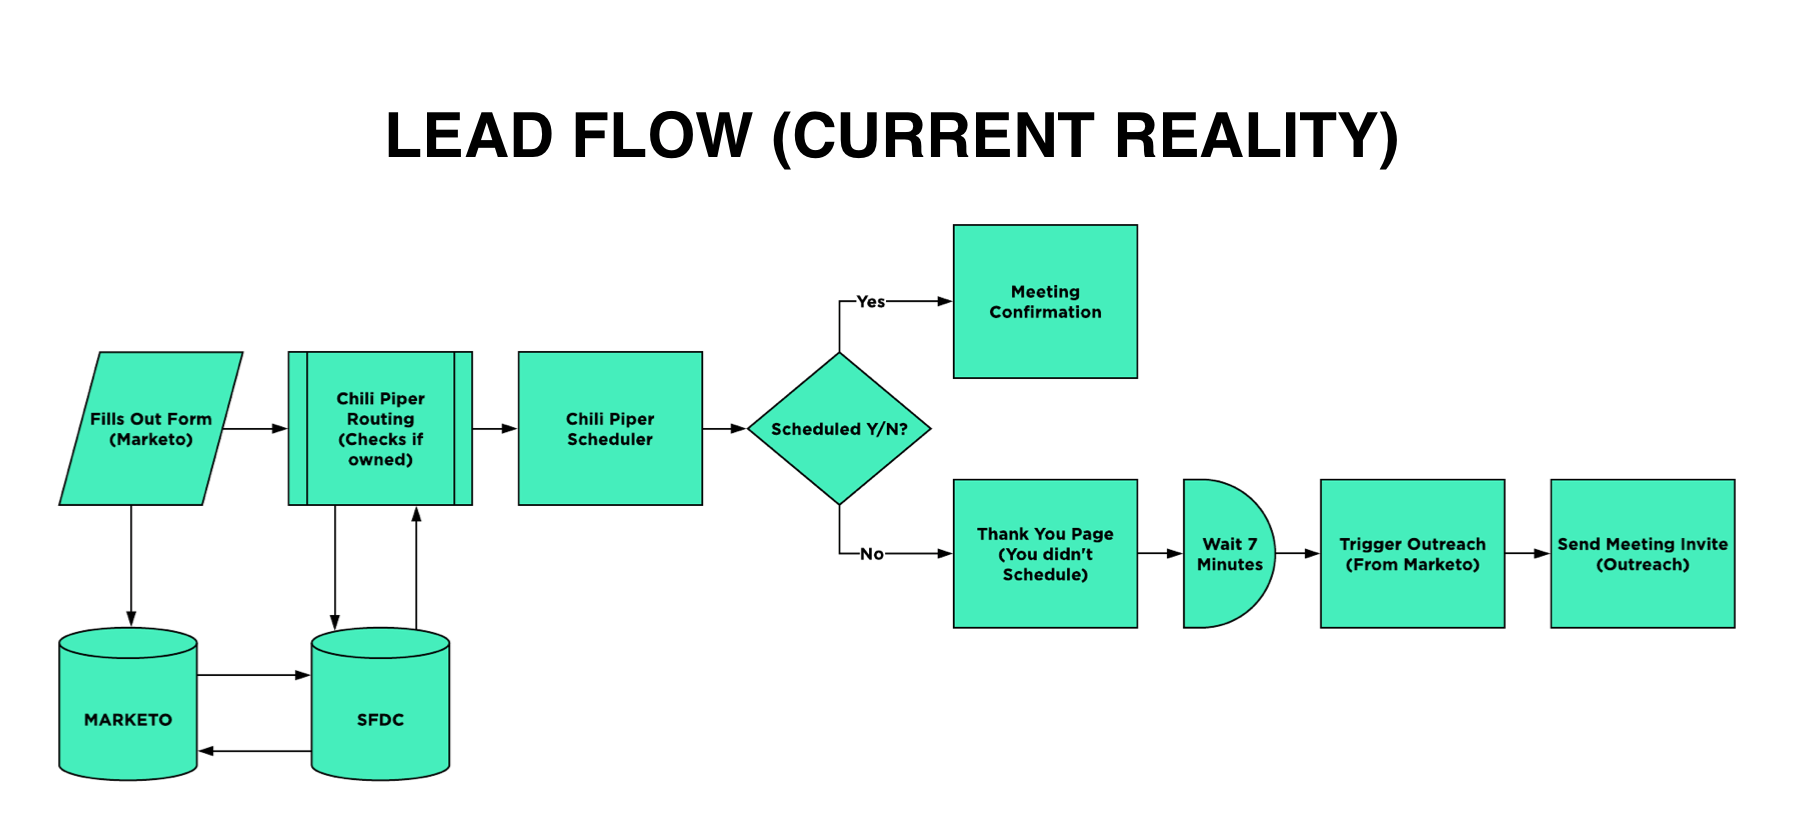 Updated lead flow